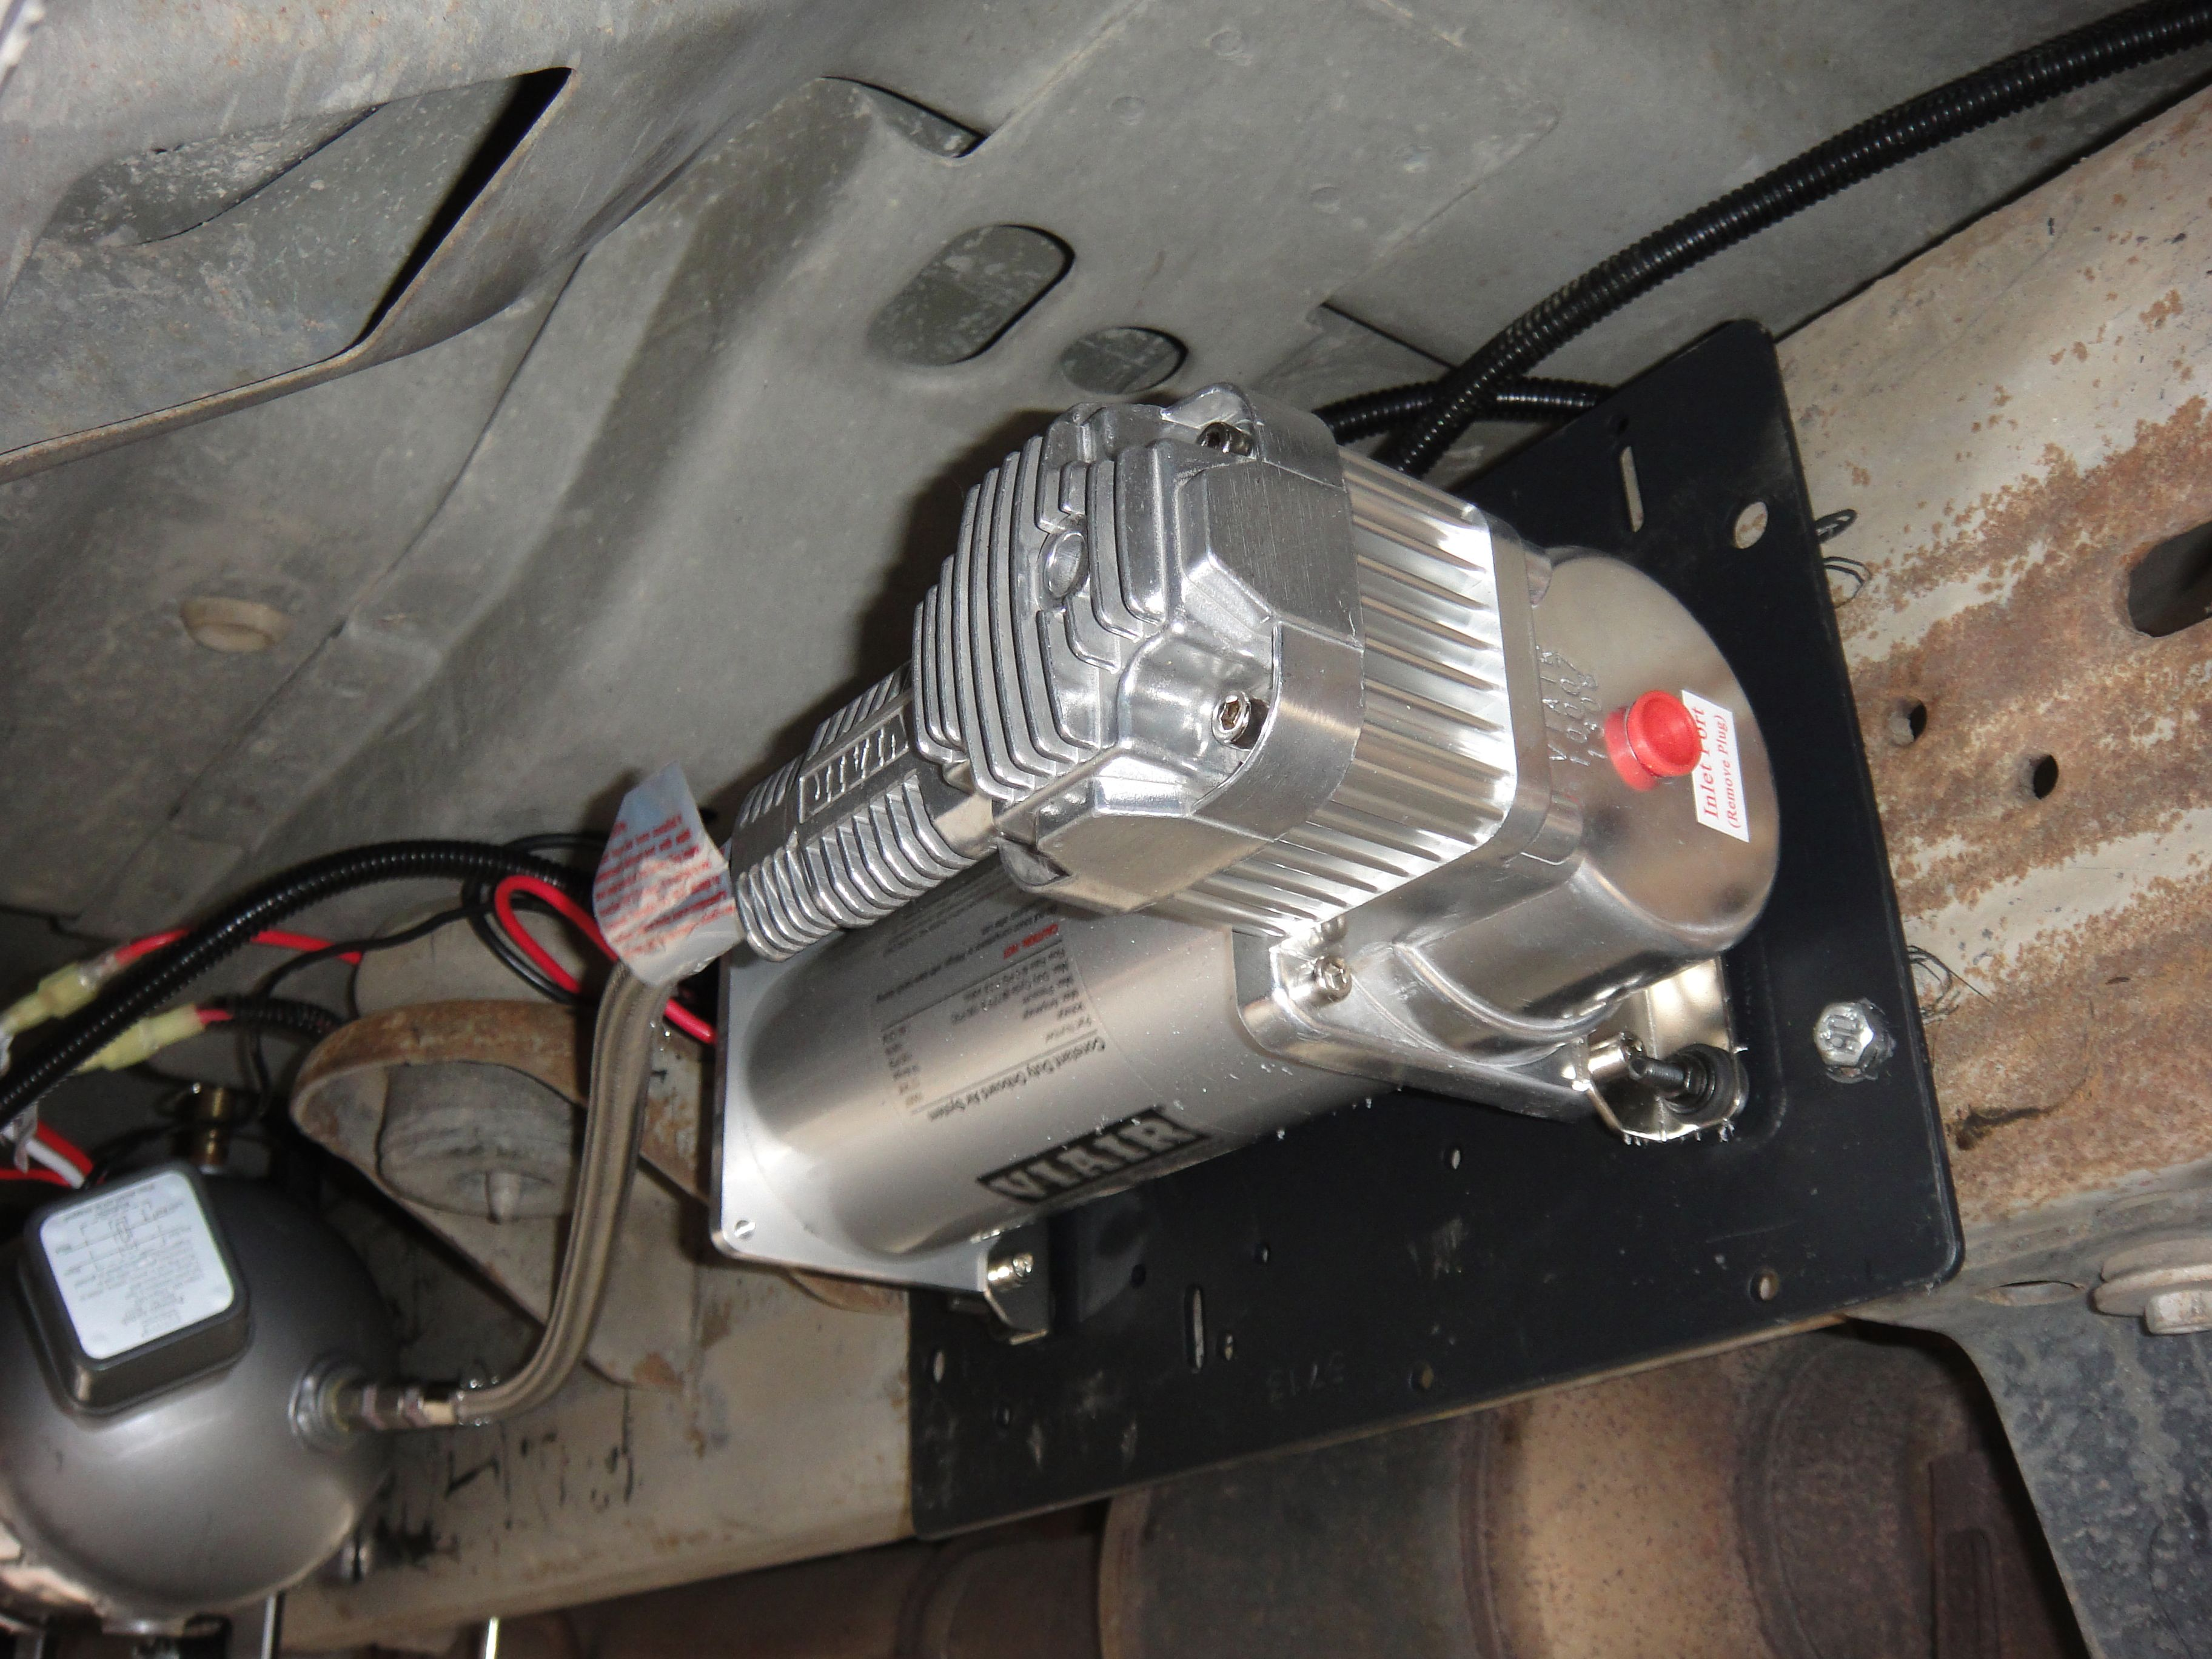 medium resolution of on board air compressor mounted to truck frame